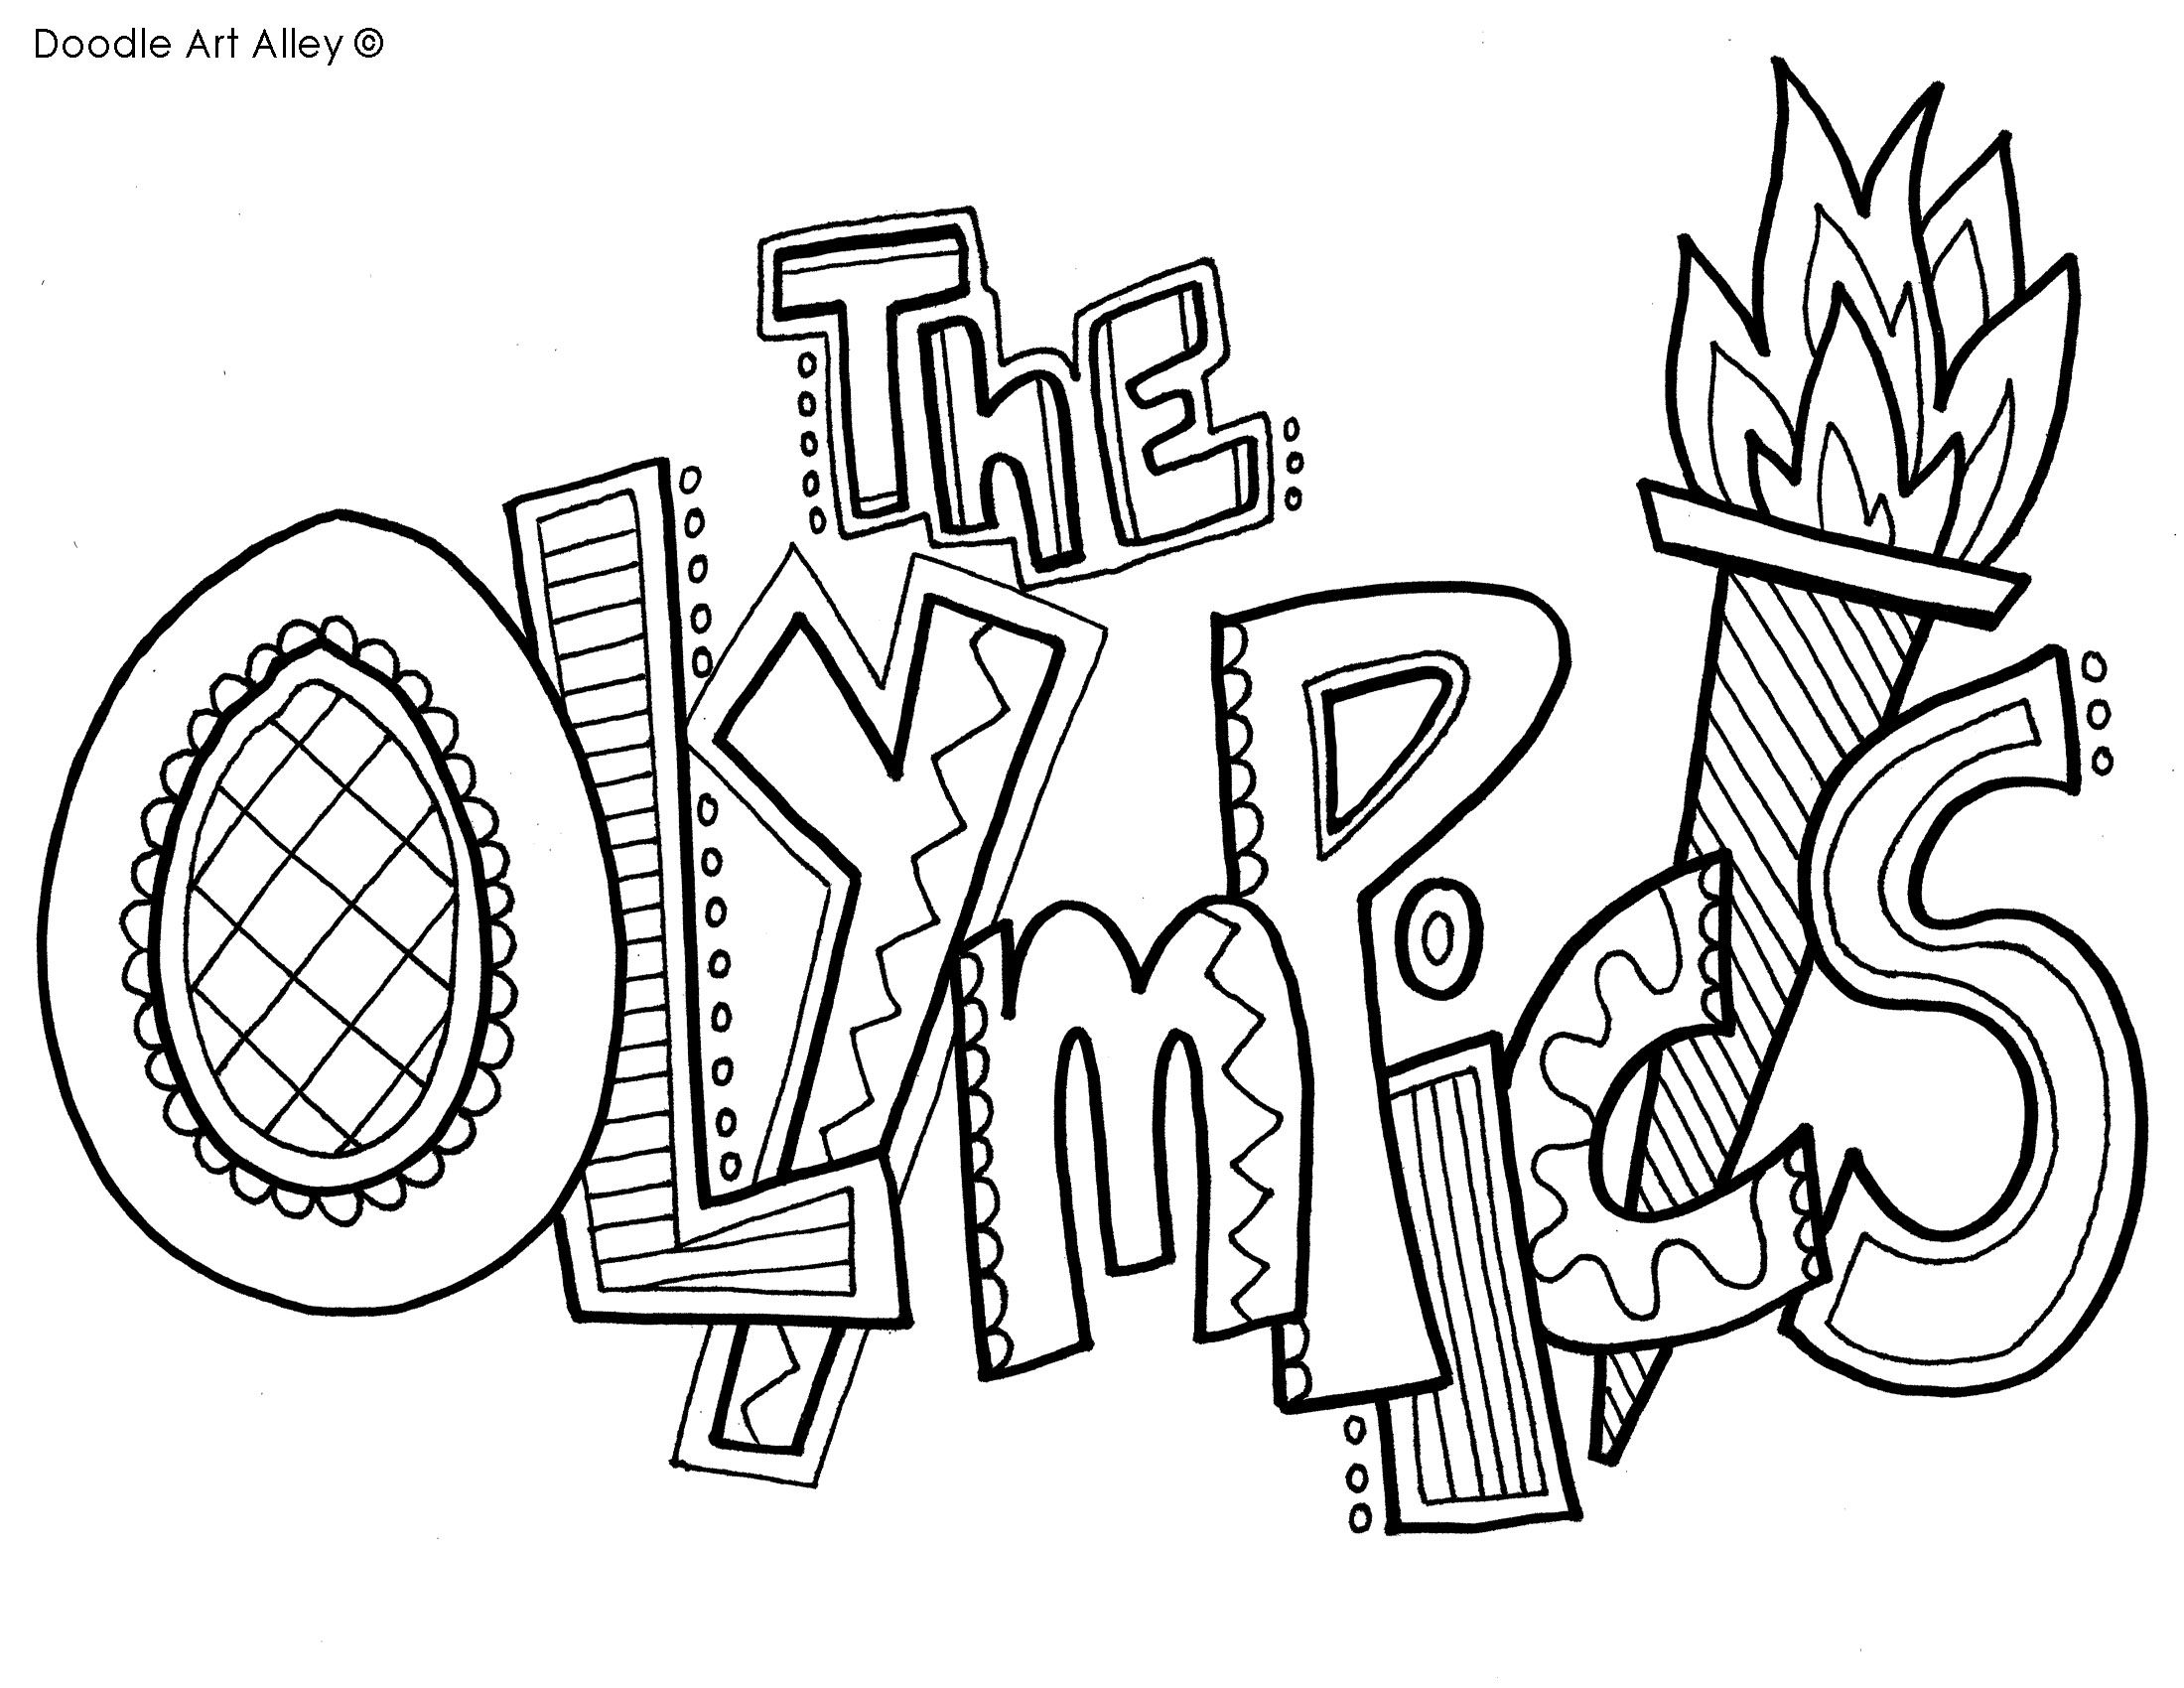 olympic colouring sheets sporty olympic coloring pages olympic mascots olympics colouring sheets olympic